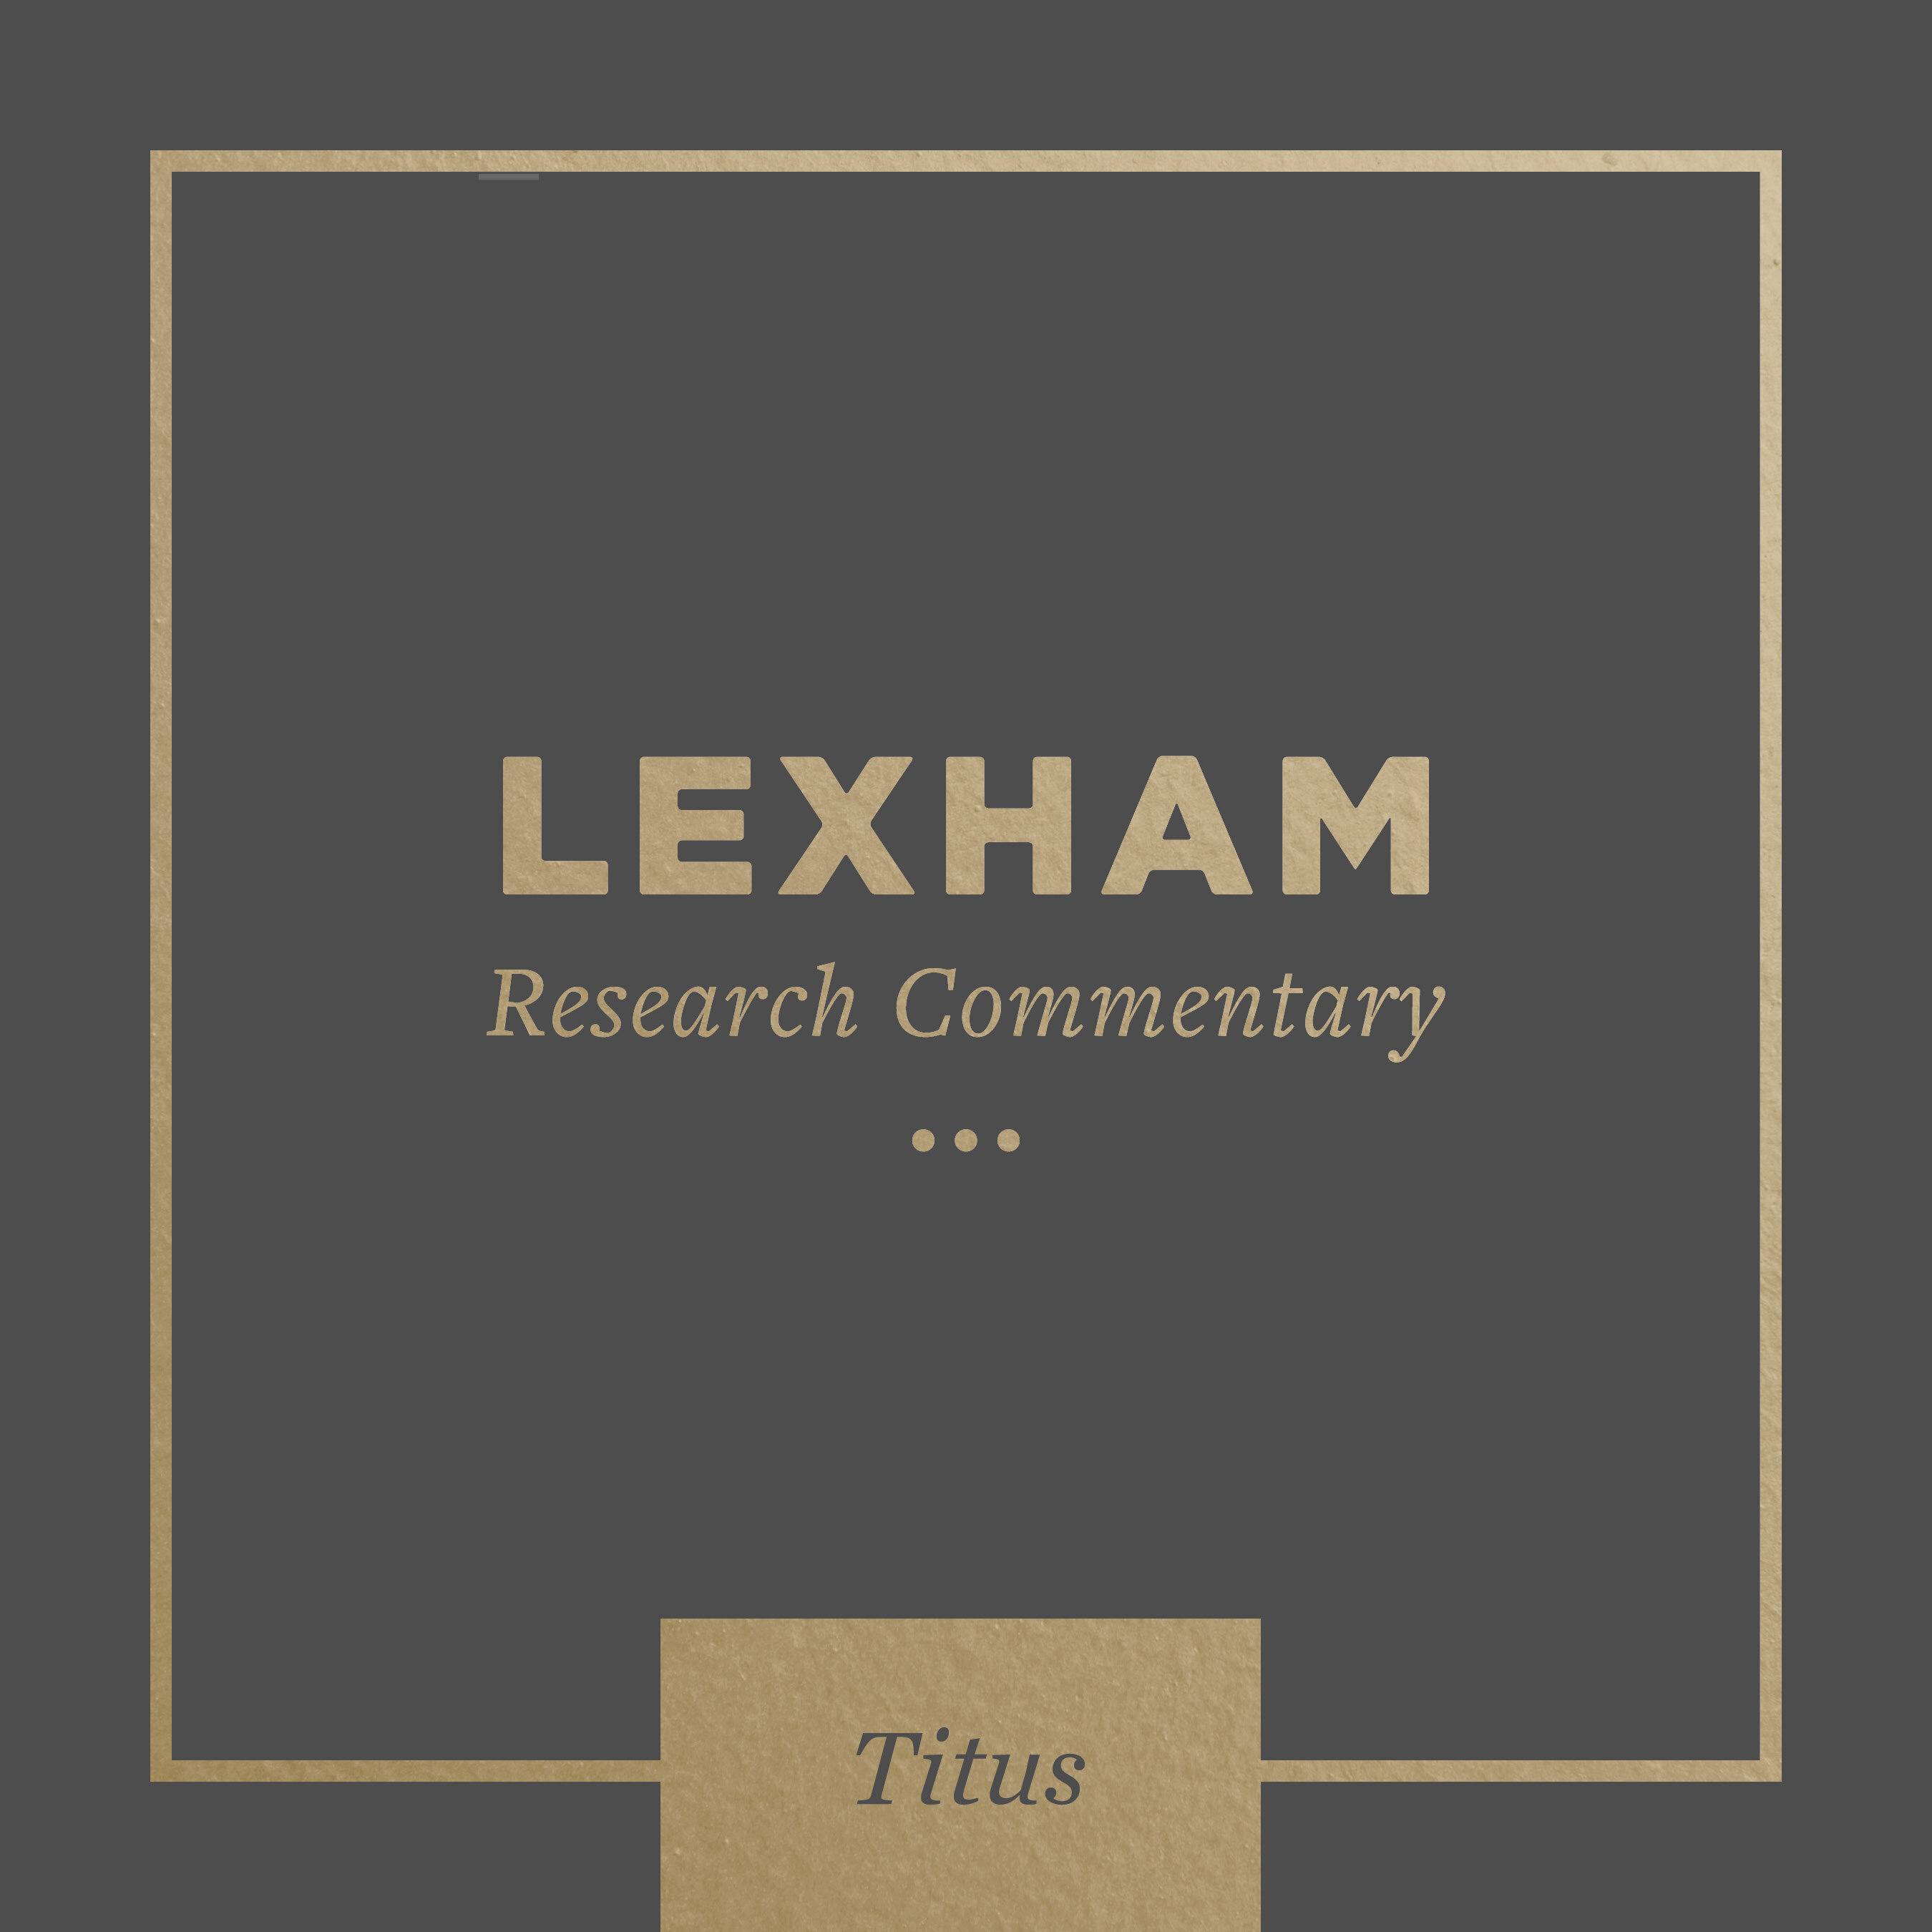 Lexham Research Commentary: Titus